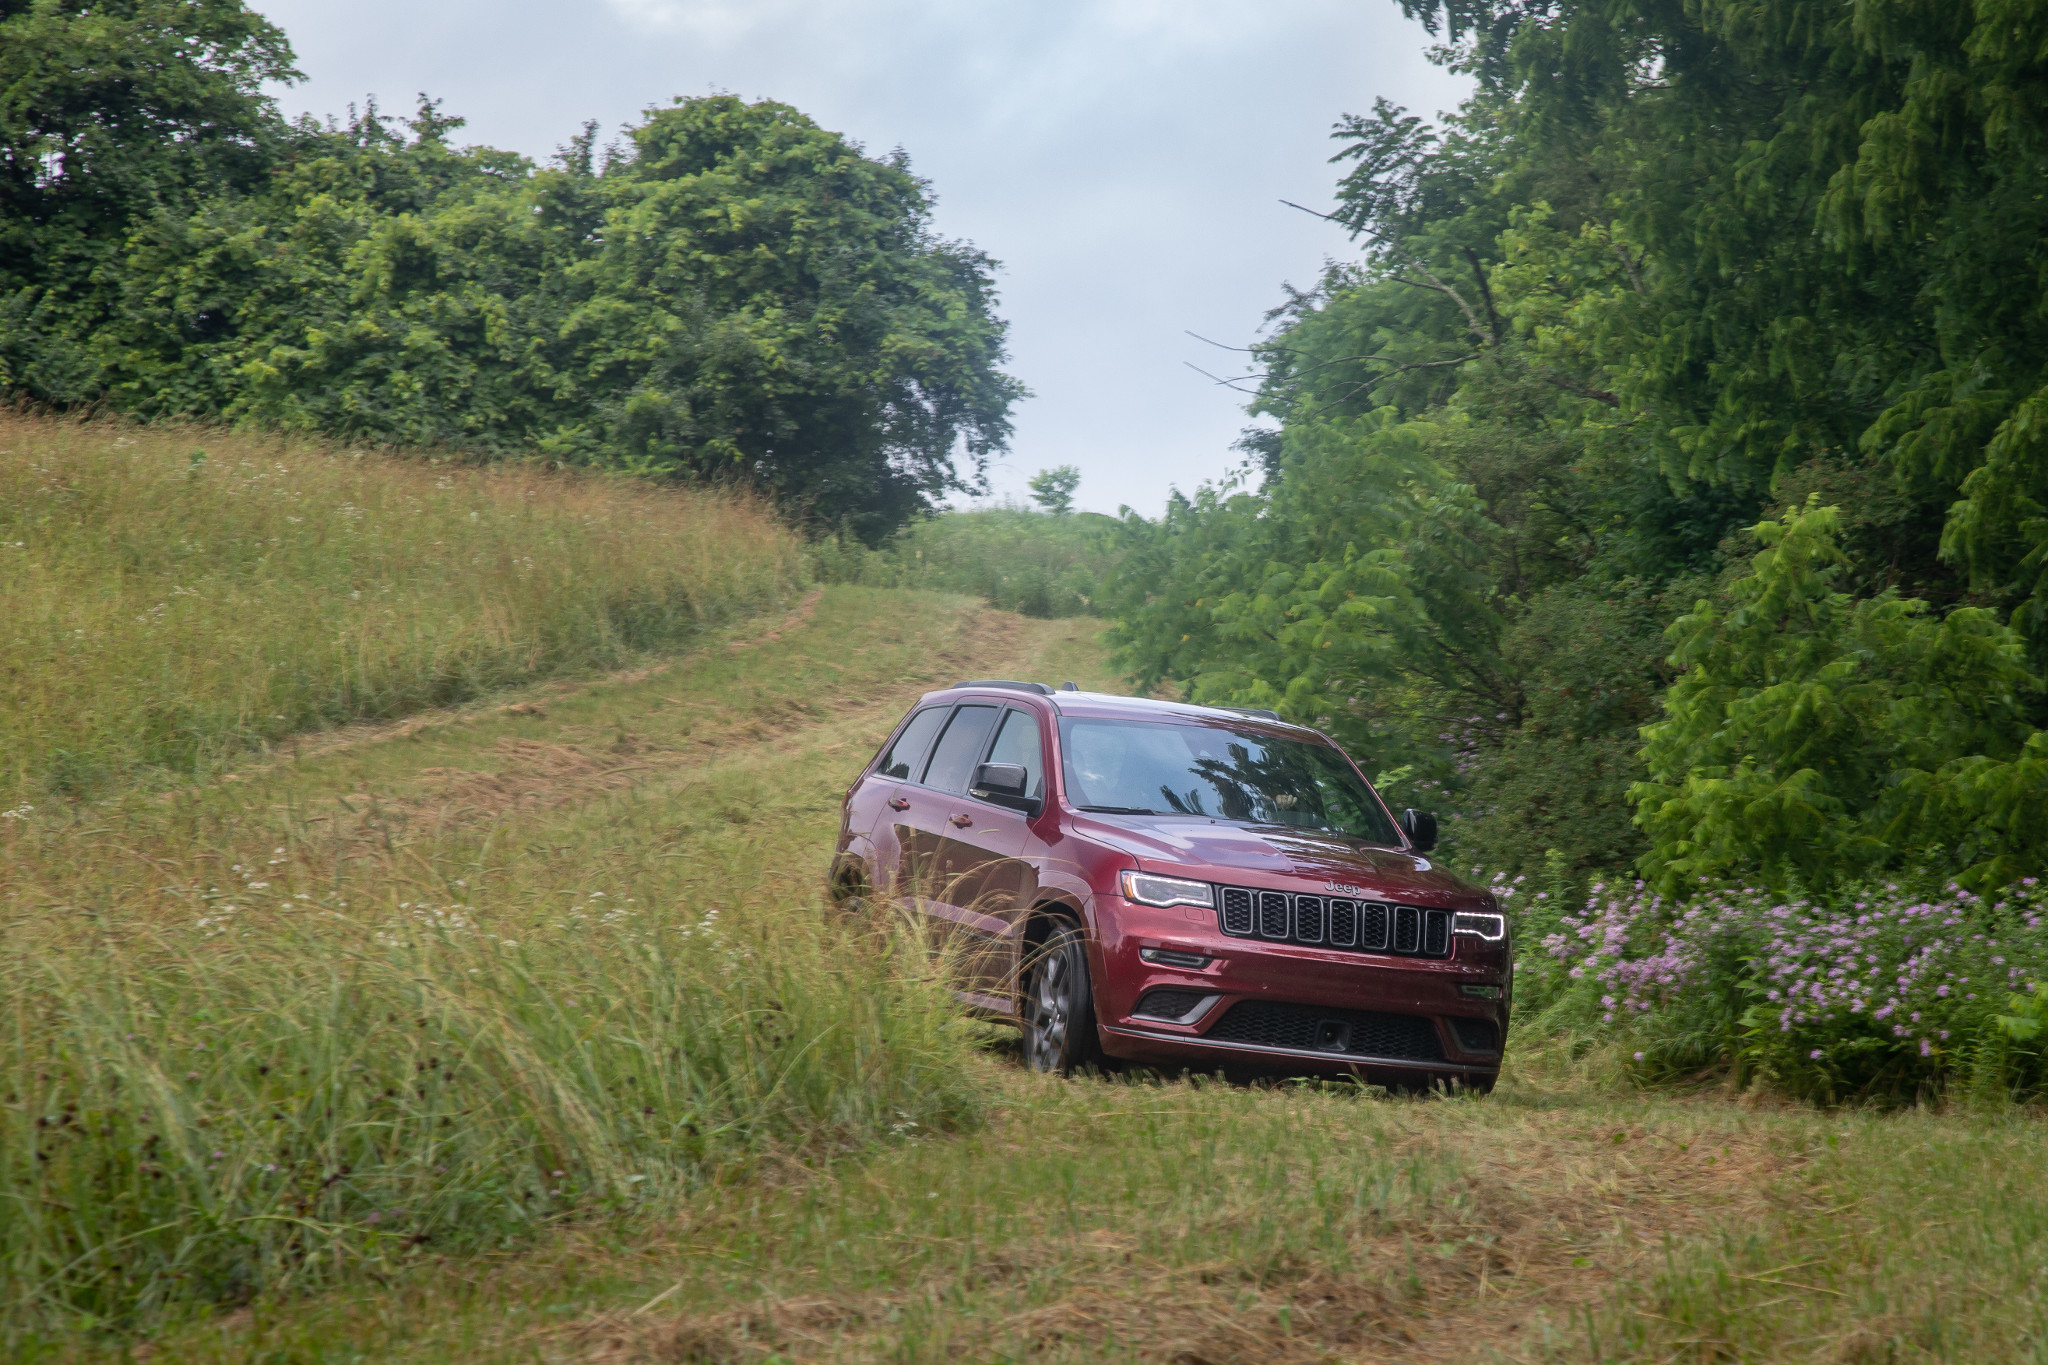 2019 Jeep Grand Cherokee Review: Good Old Dog Running Out of Tricks